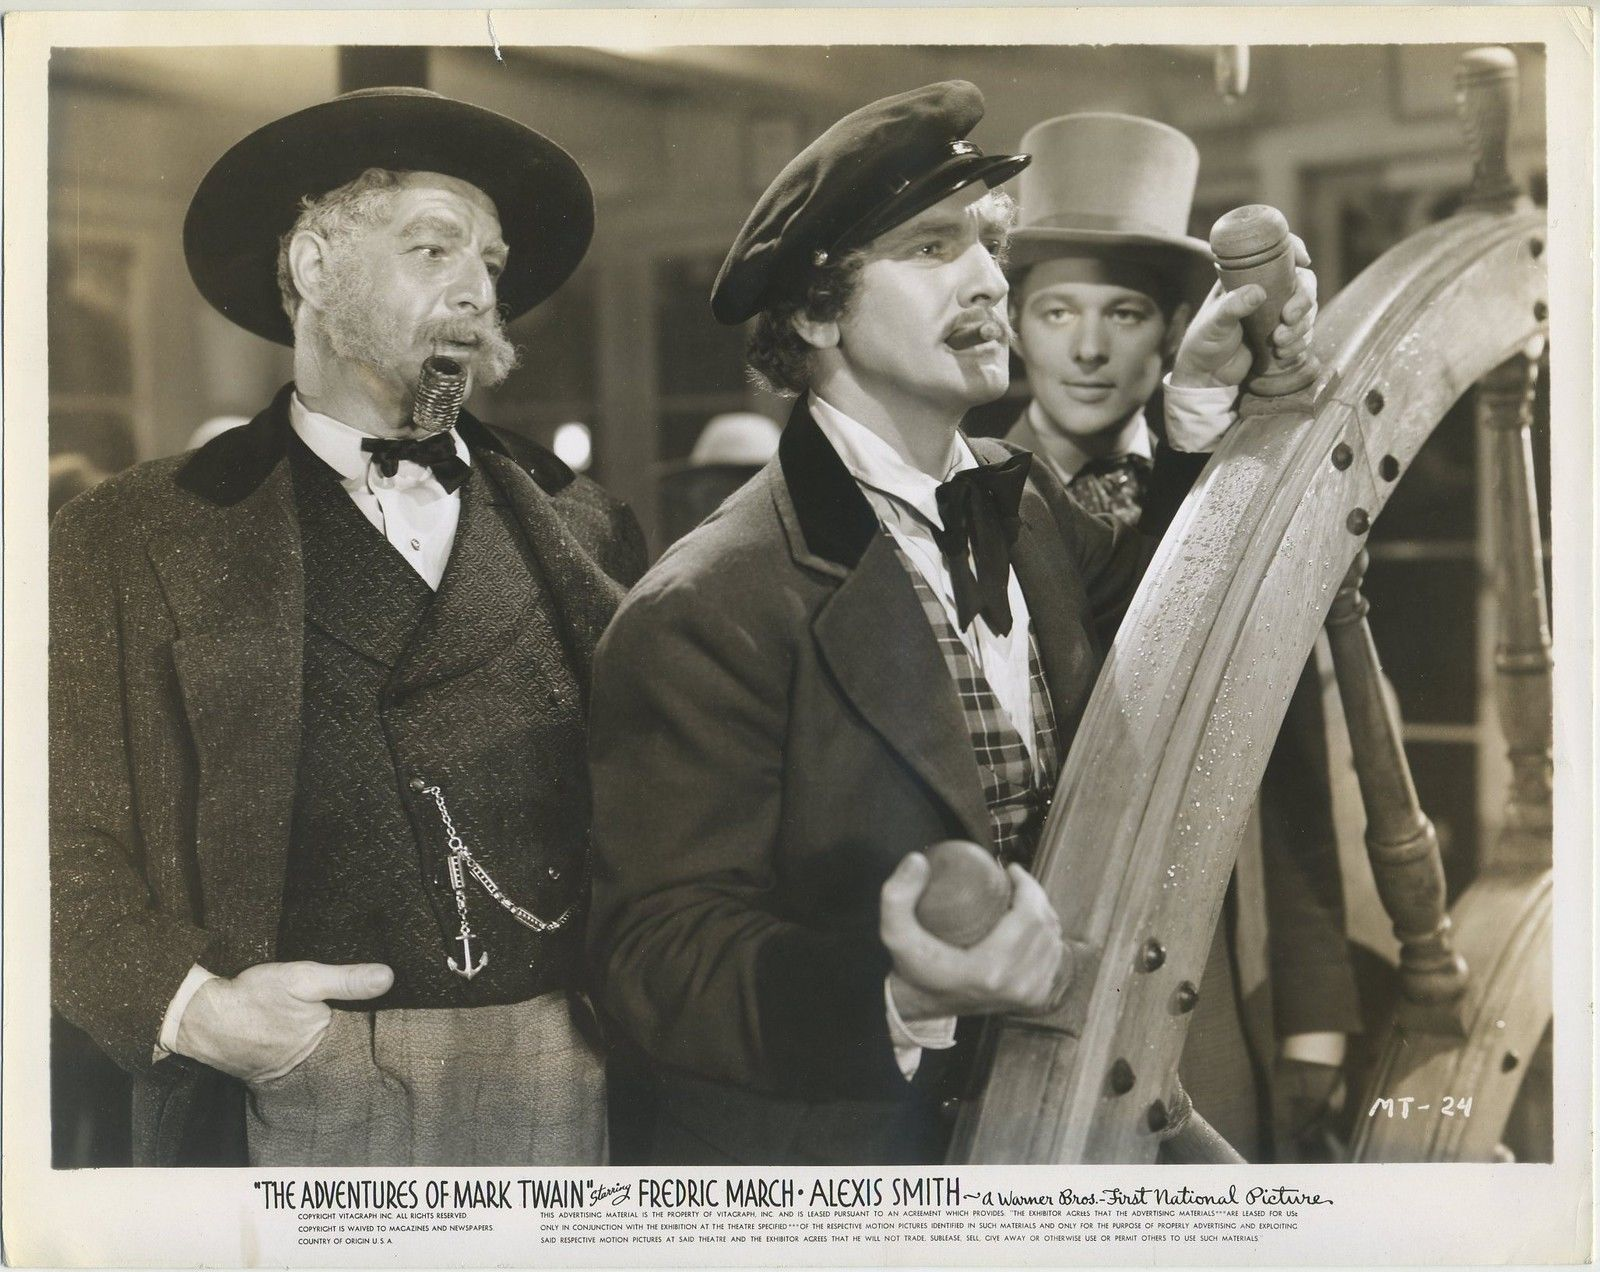 Robert Barrat, William Henry, and Fredric March in The Adventures of Mark Twain (1944)